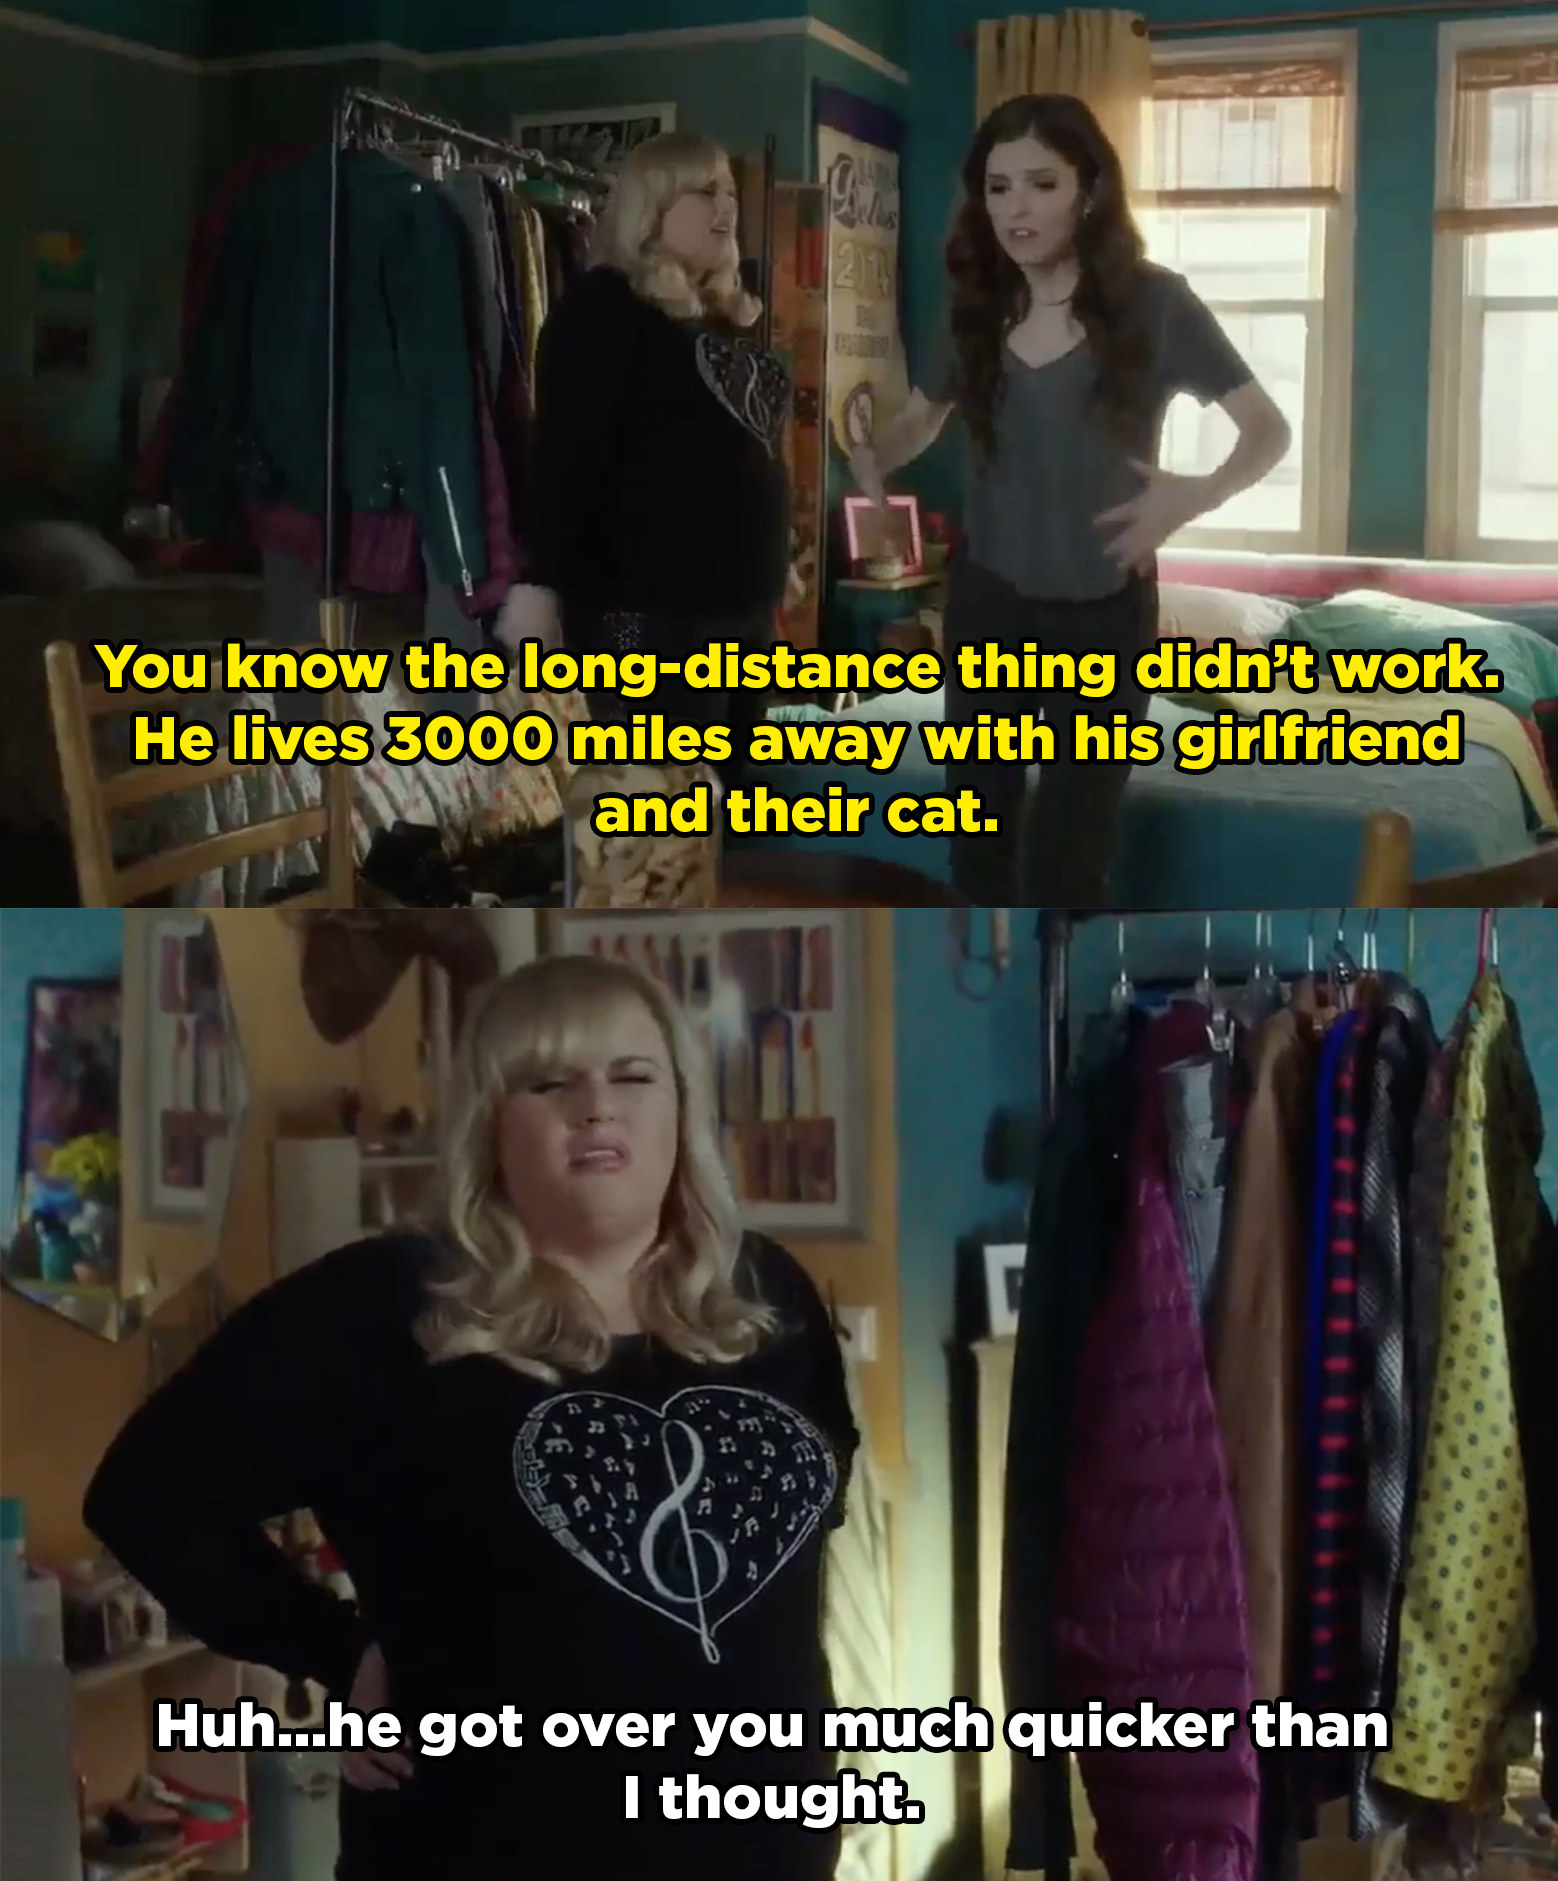 Beca tells Amy that her long distance relationship with Jesse didn't work because he lives 3000 miles away with his new girlfriend. Amy is surprised he got over her so quickly.